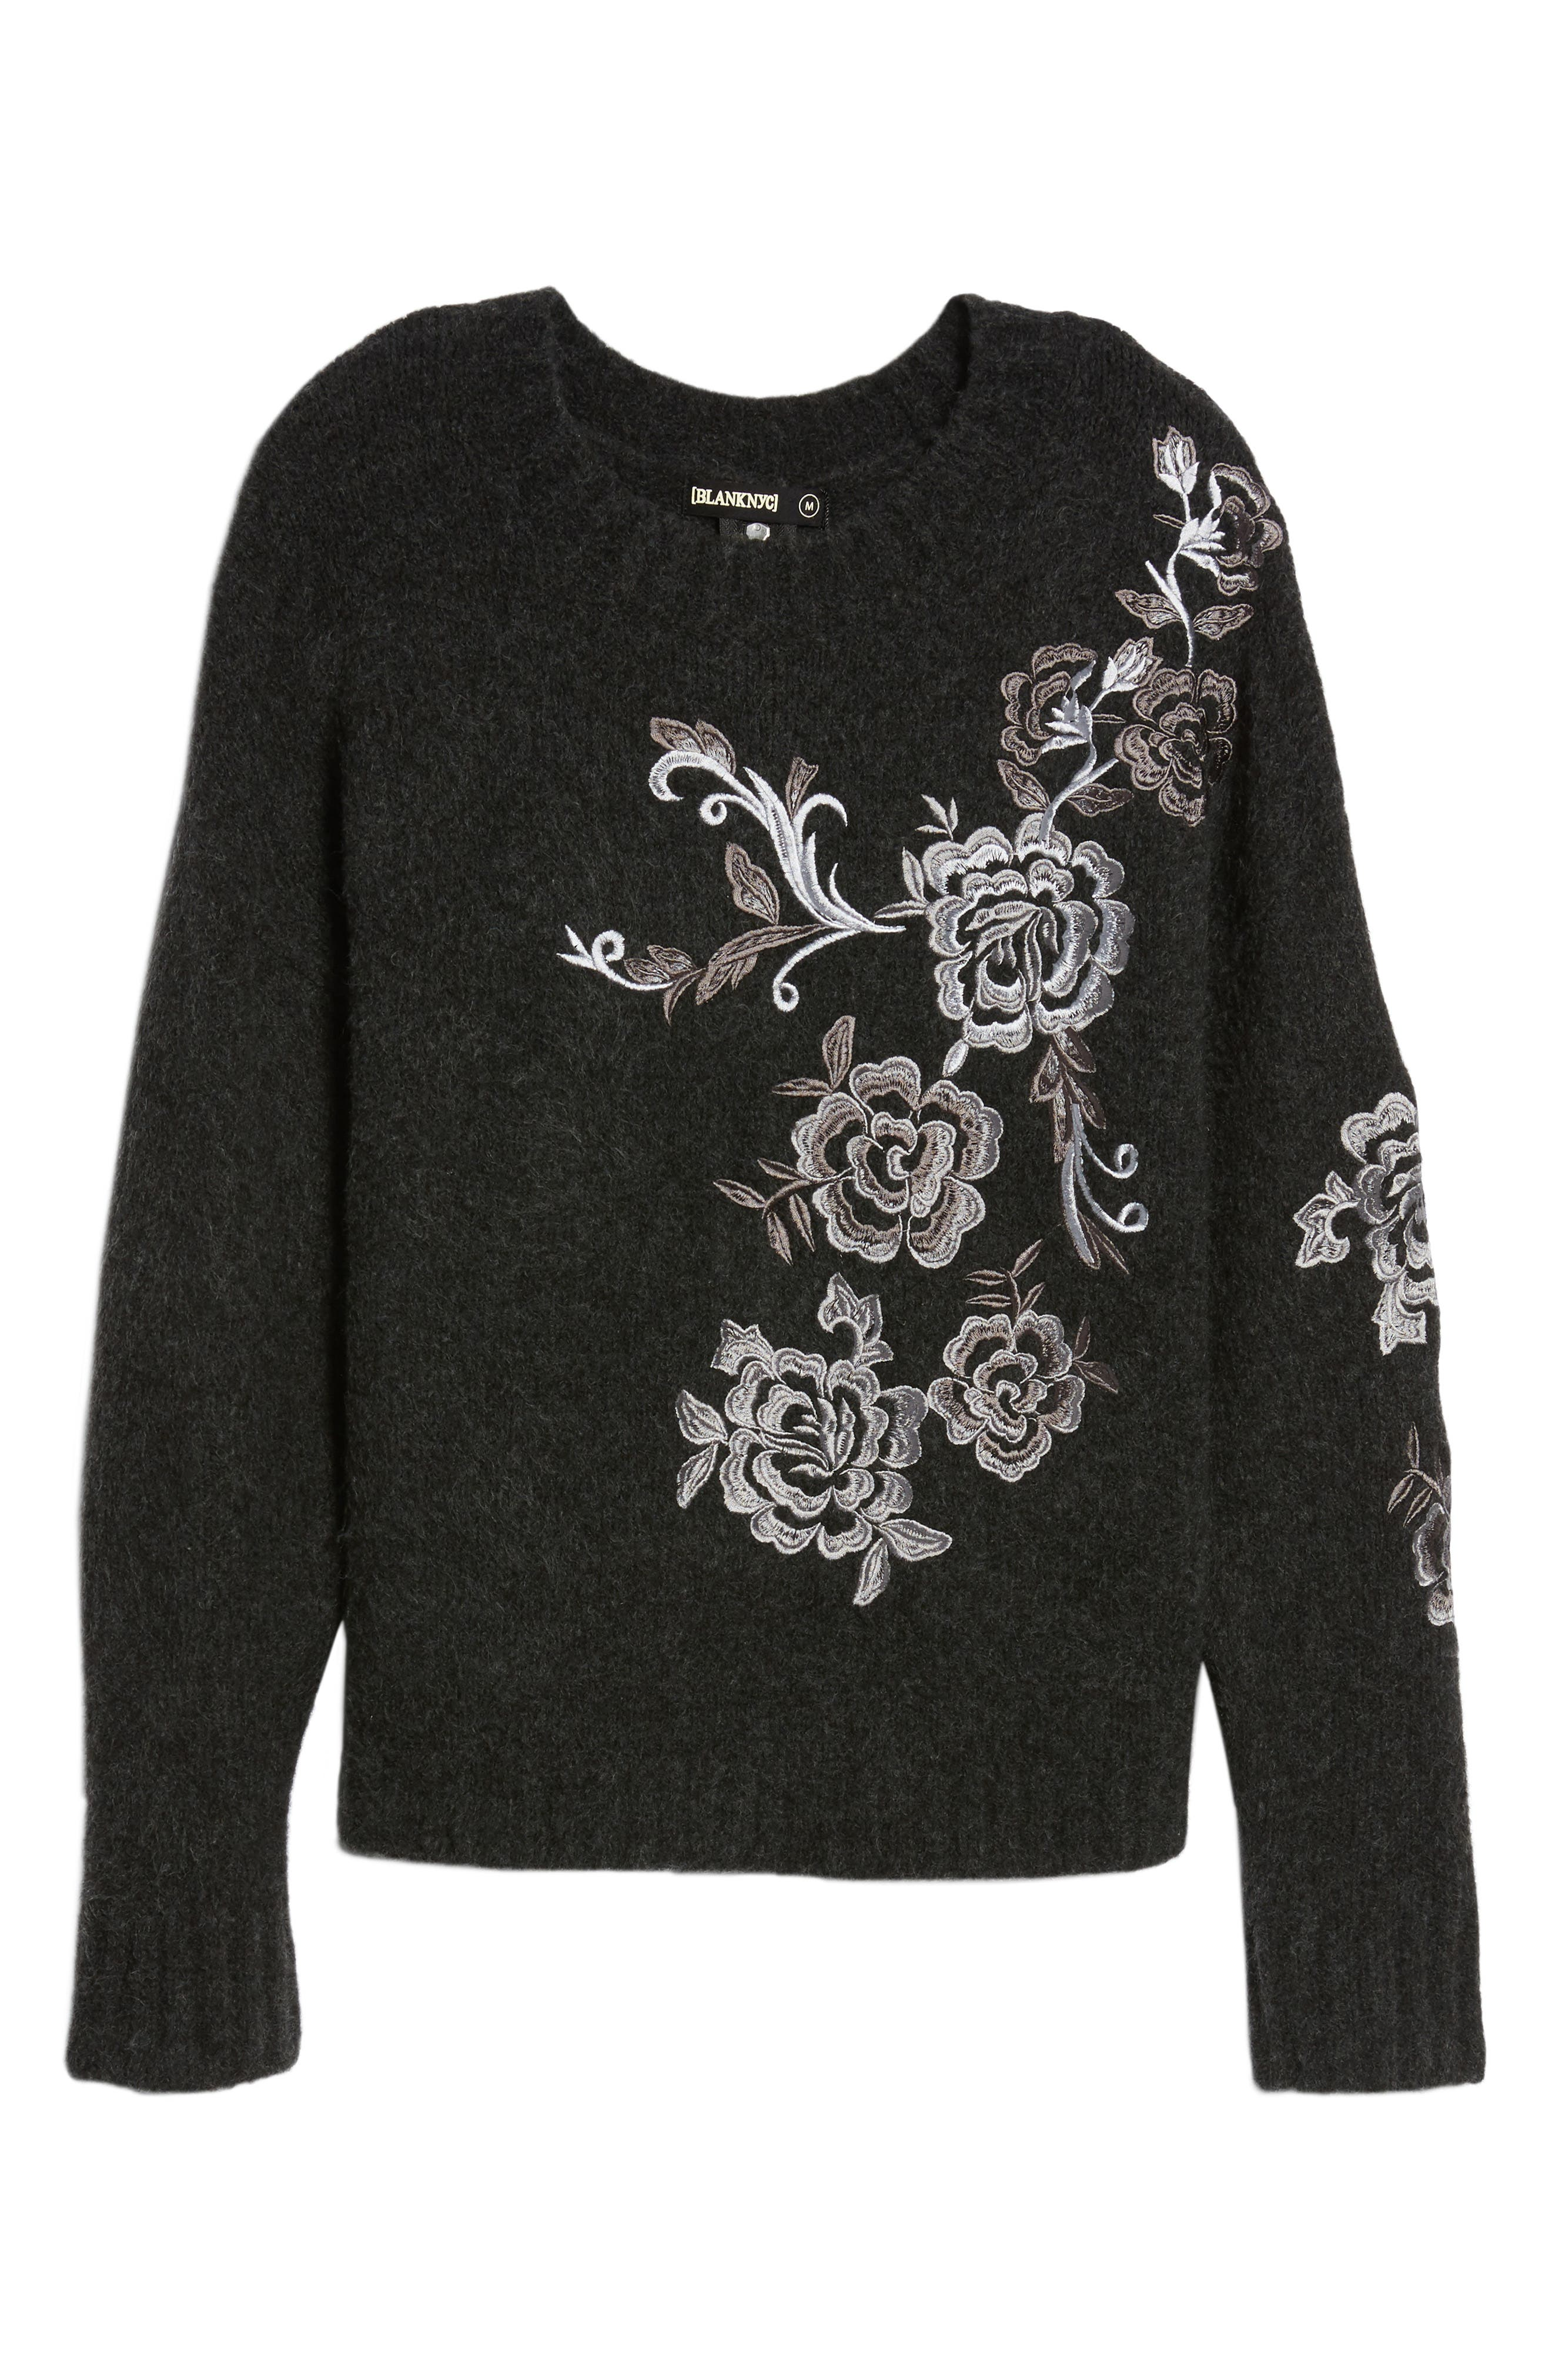 Grey Gardens Embroidered Sweater,                             Alternate thumbnail 6, color,                             Charcoal